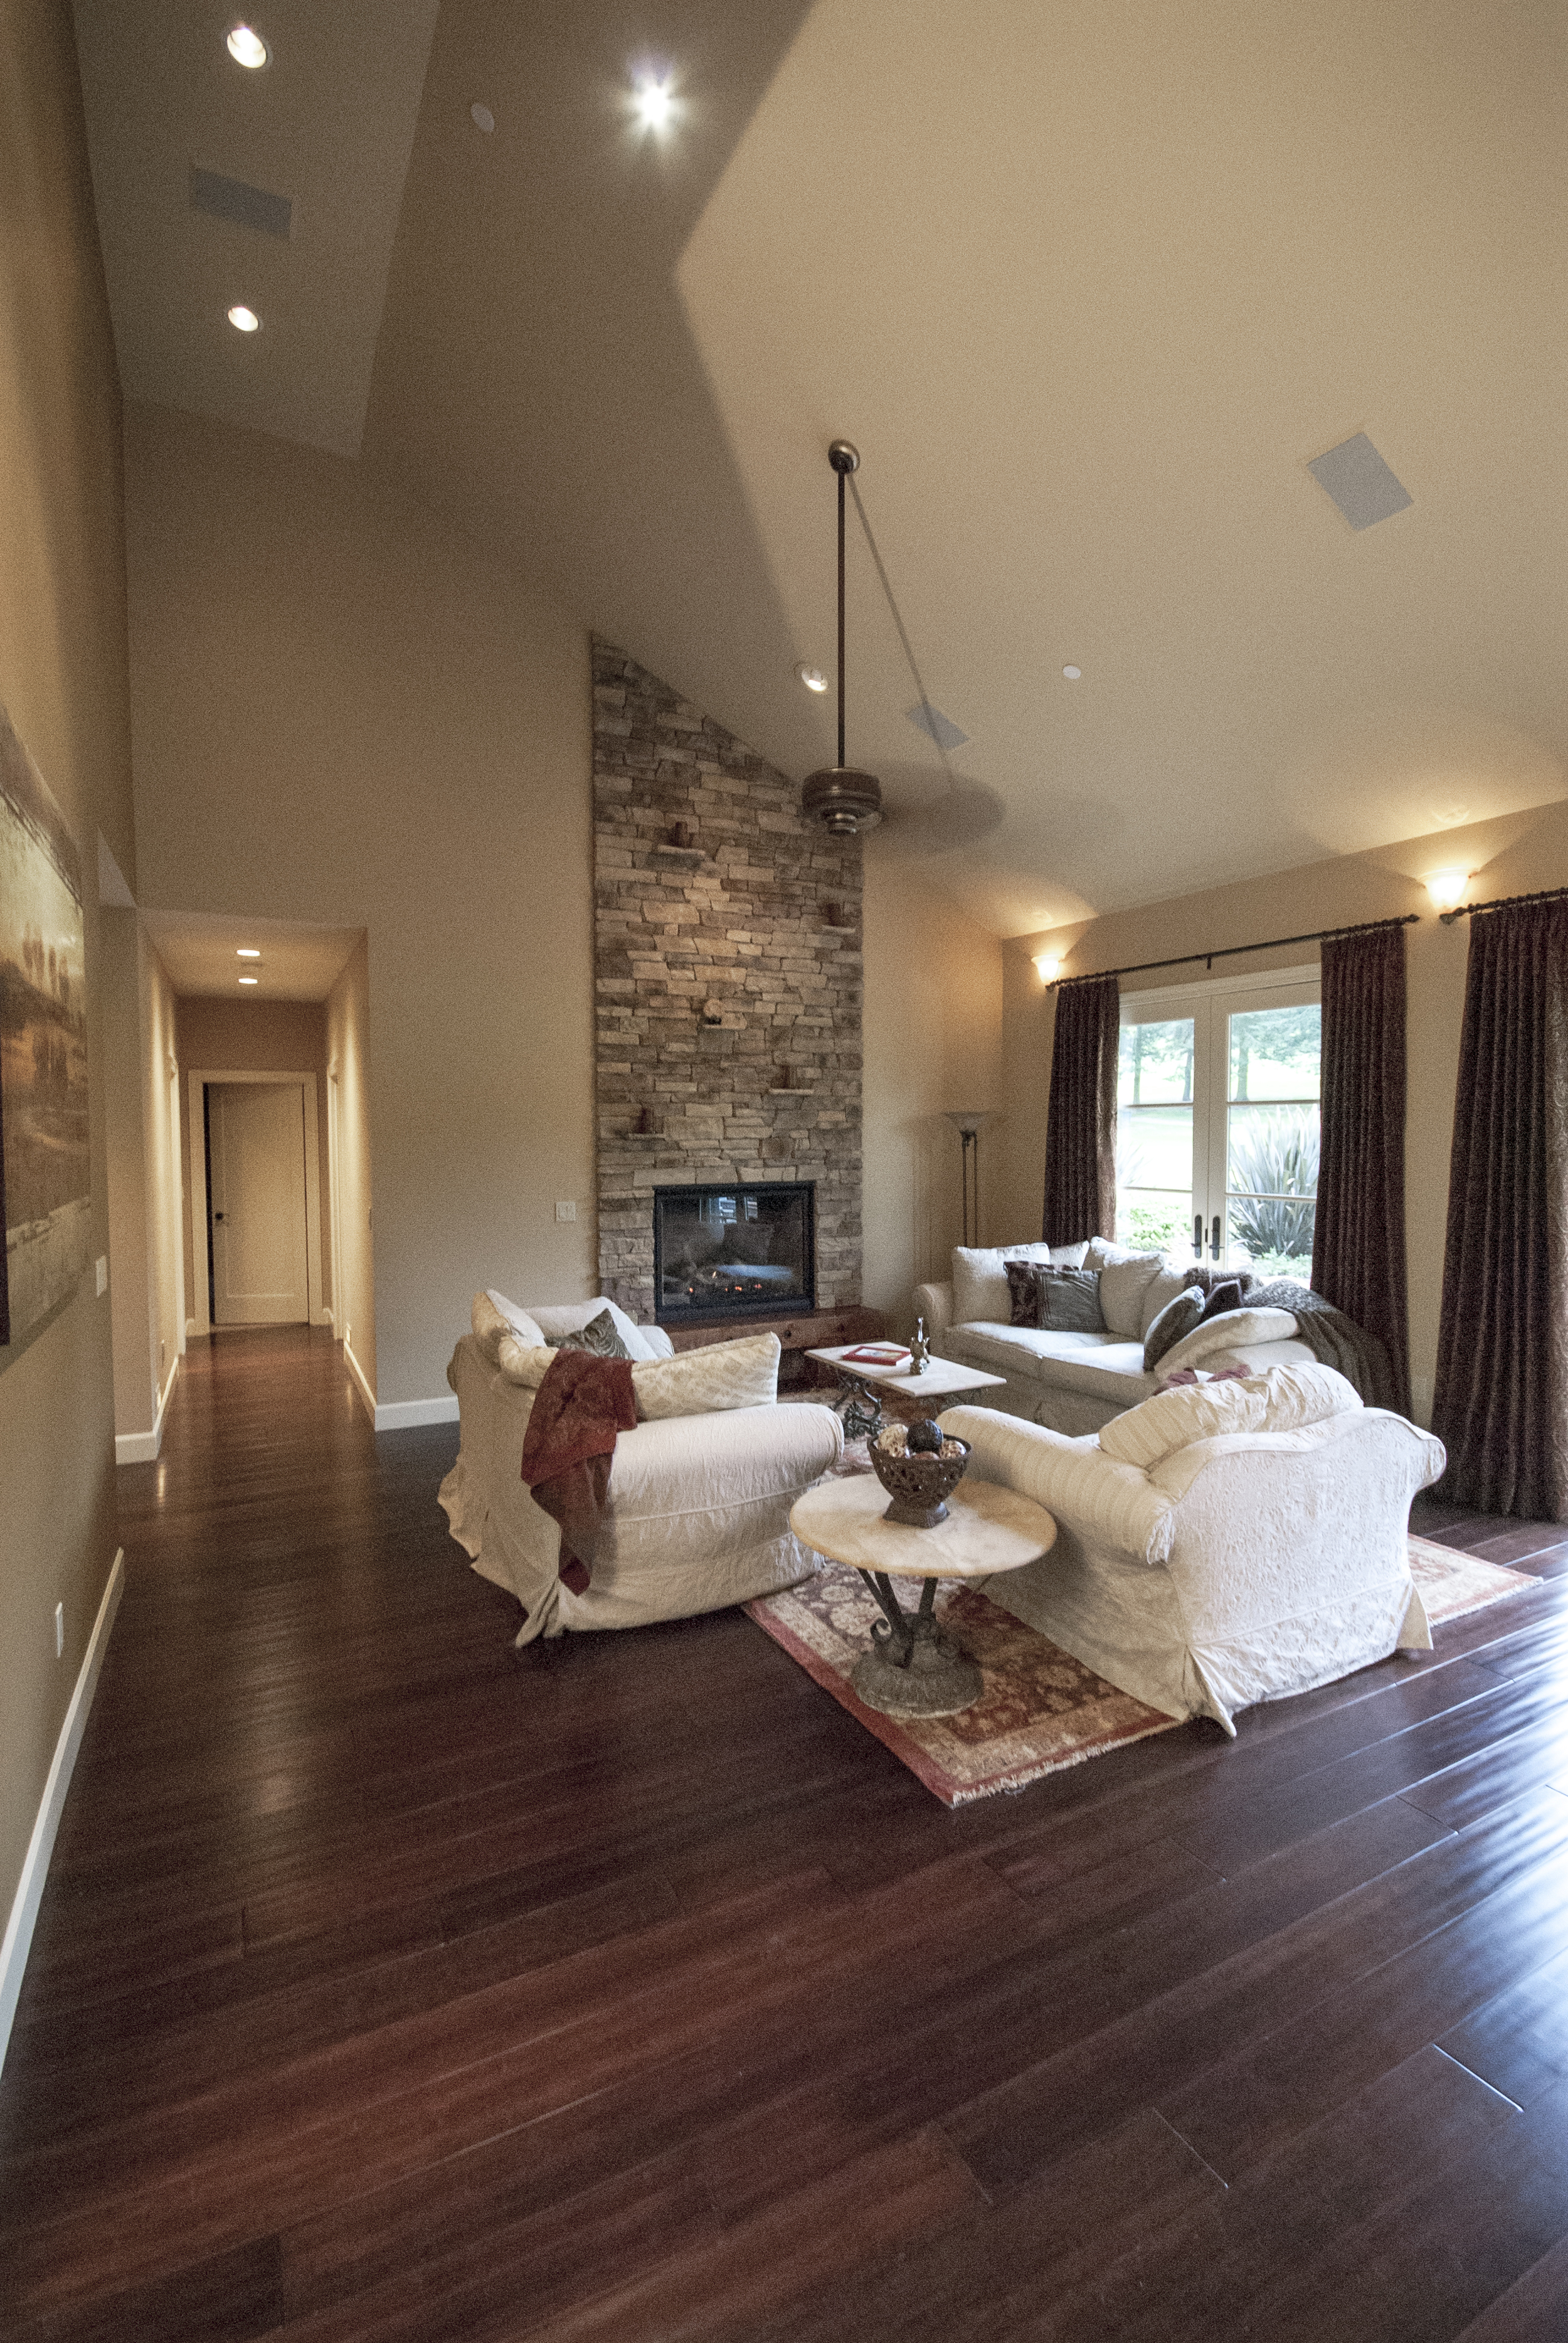 The great room concept is beautifully executed and includes a custom field stone floor to ceiling fireplace and vaulted ceilings.